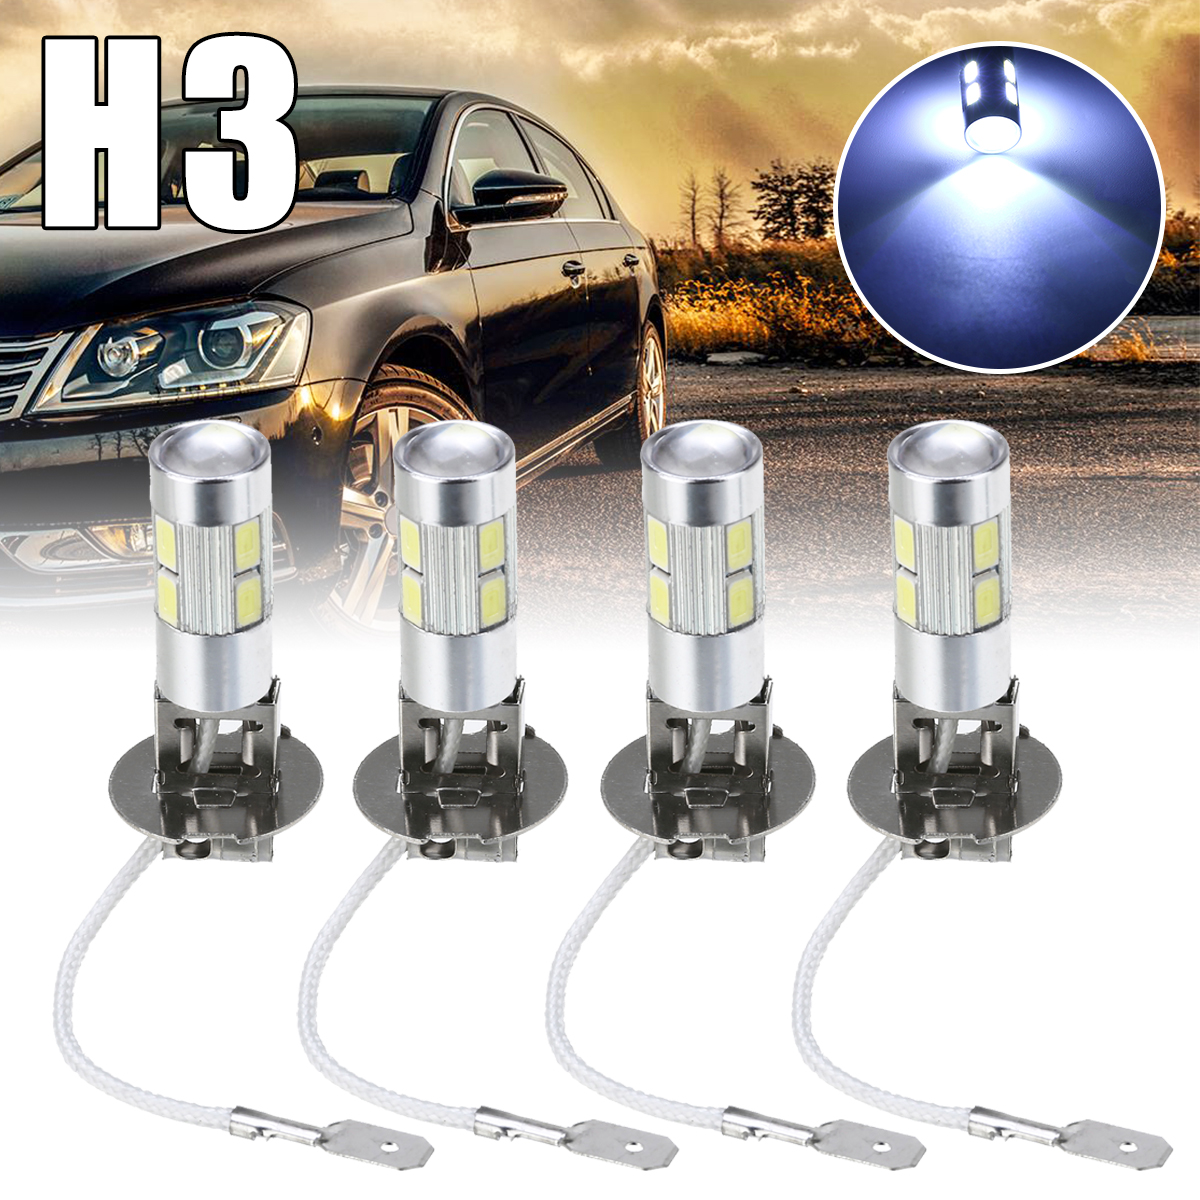 4Pcs Car Light H3 5630 10SMD LED Car Fog Driving Light Lamp Bulb White Auto Head Lamp Bulb Fog Lights